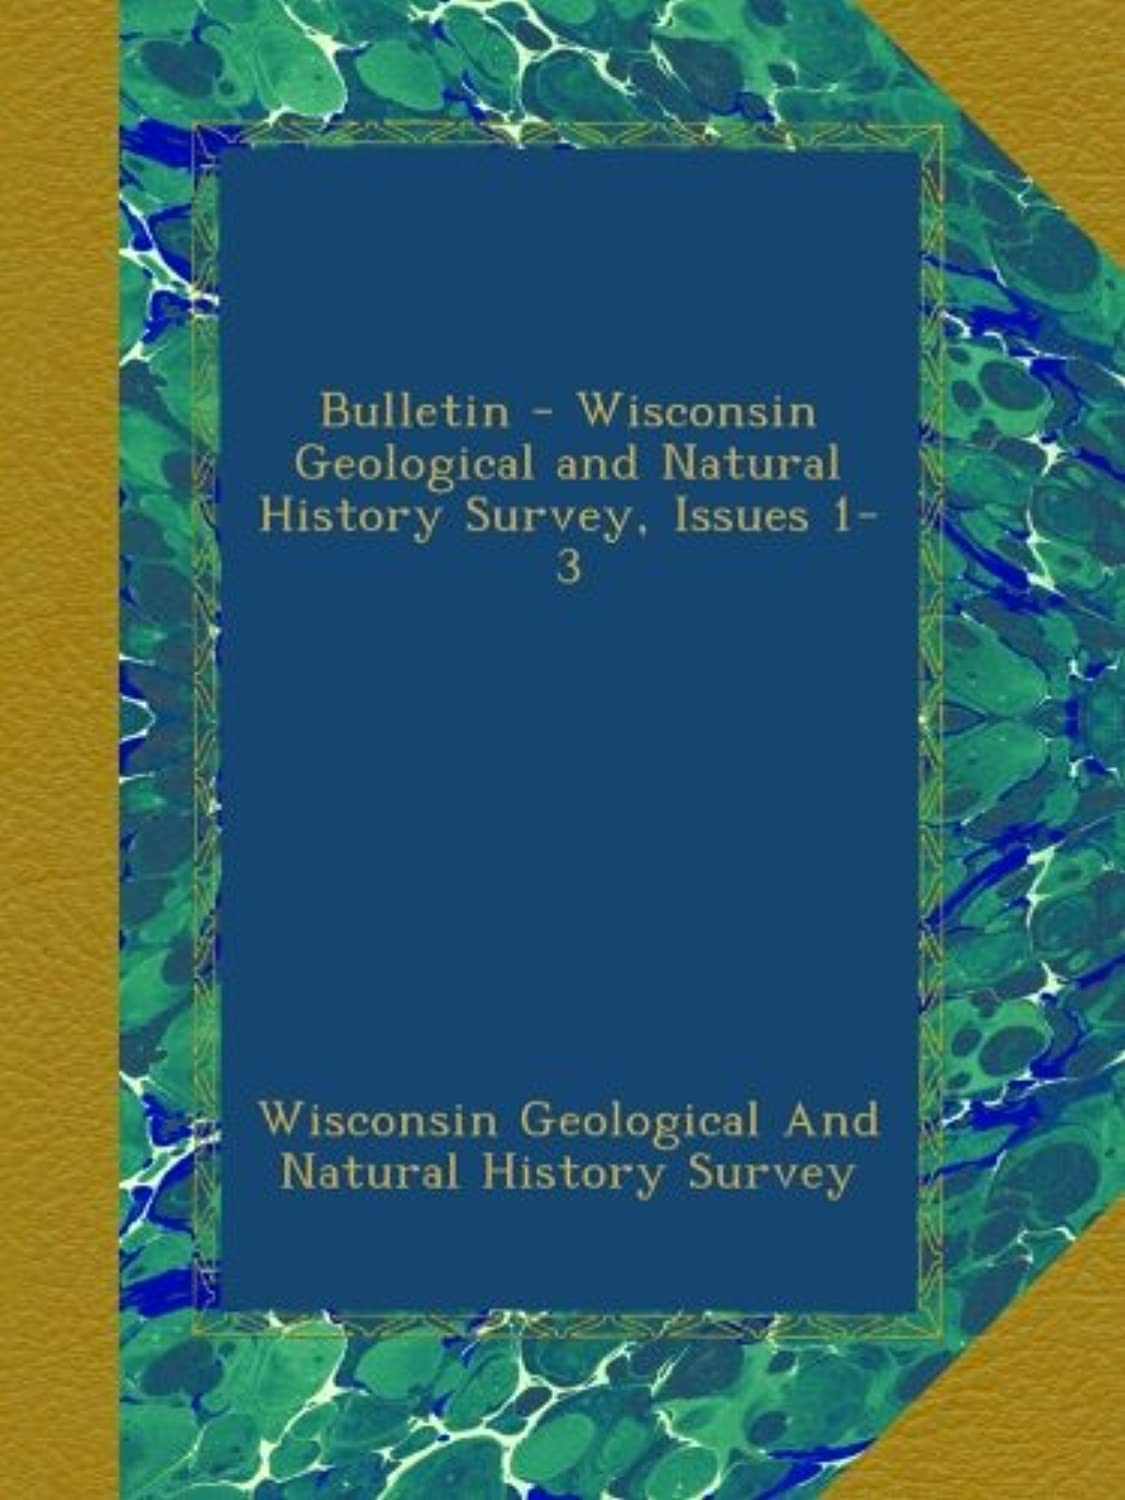 Bulletin - Wisconsin Geological and Natural History Survey, Issues 1-3